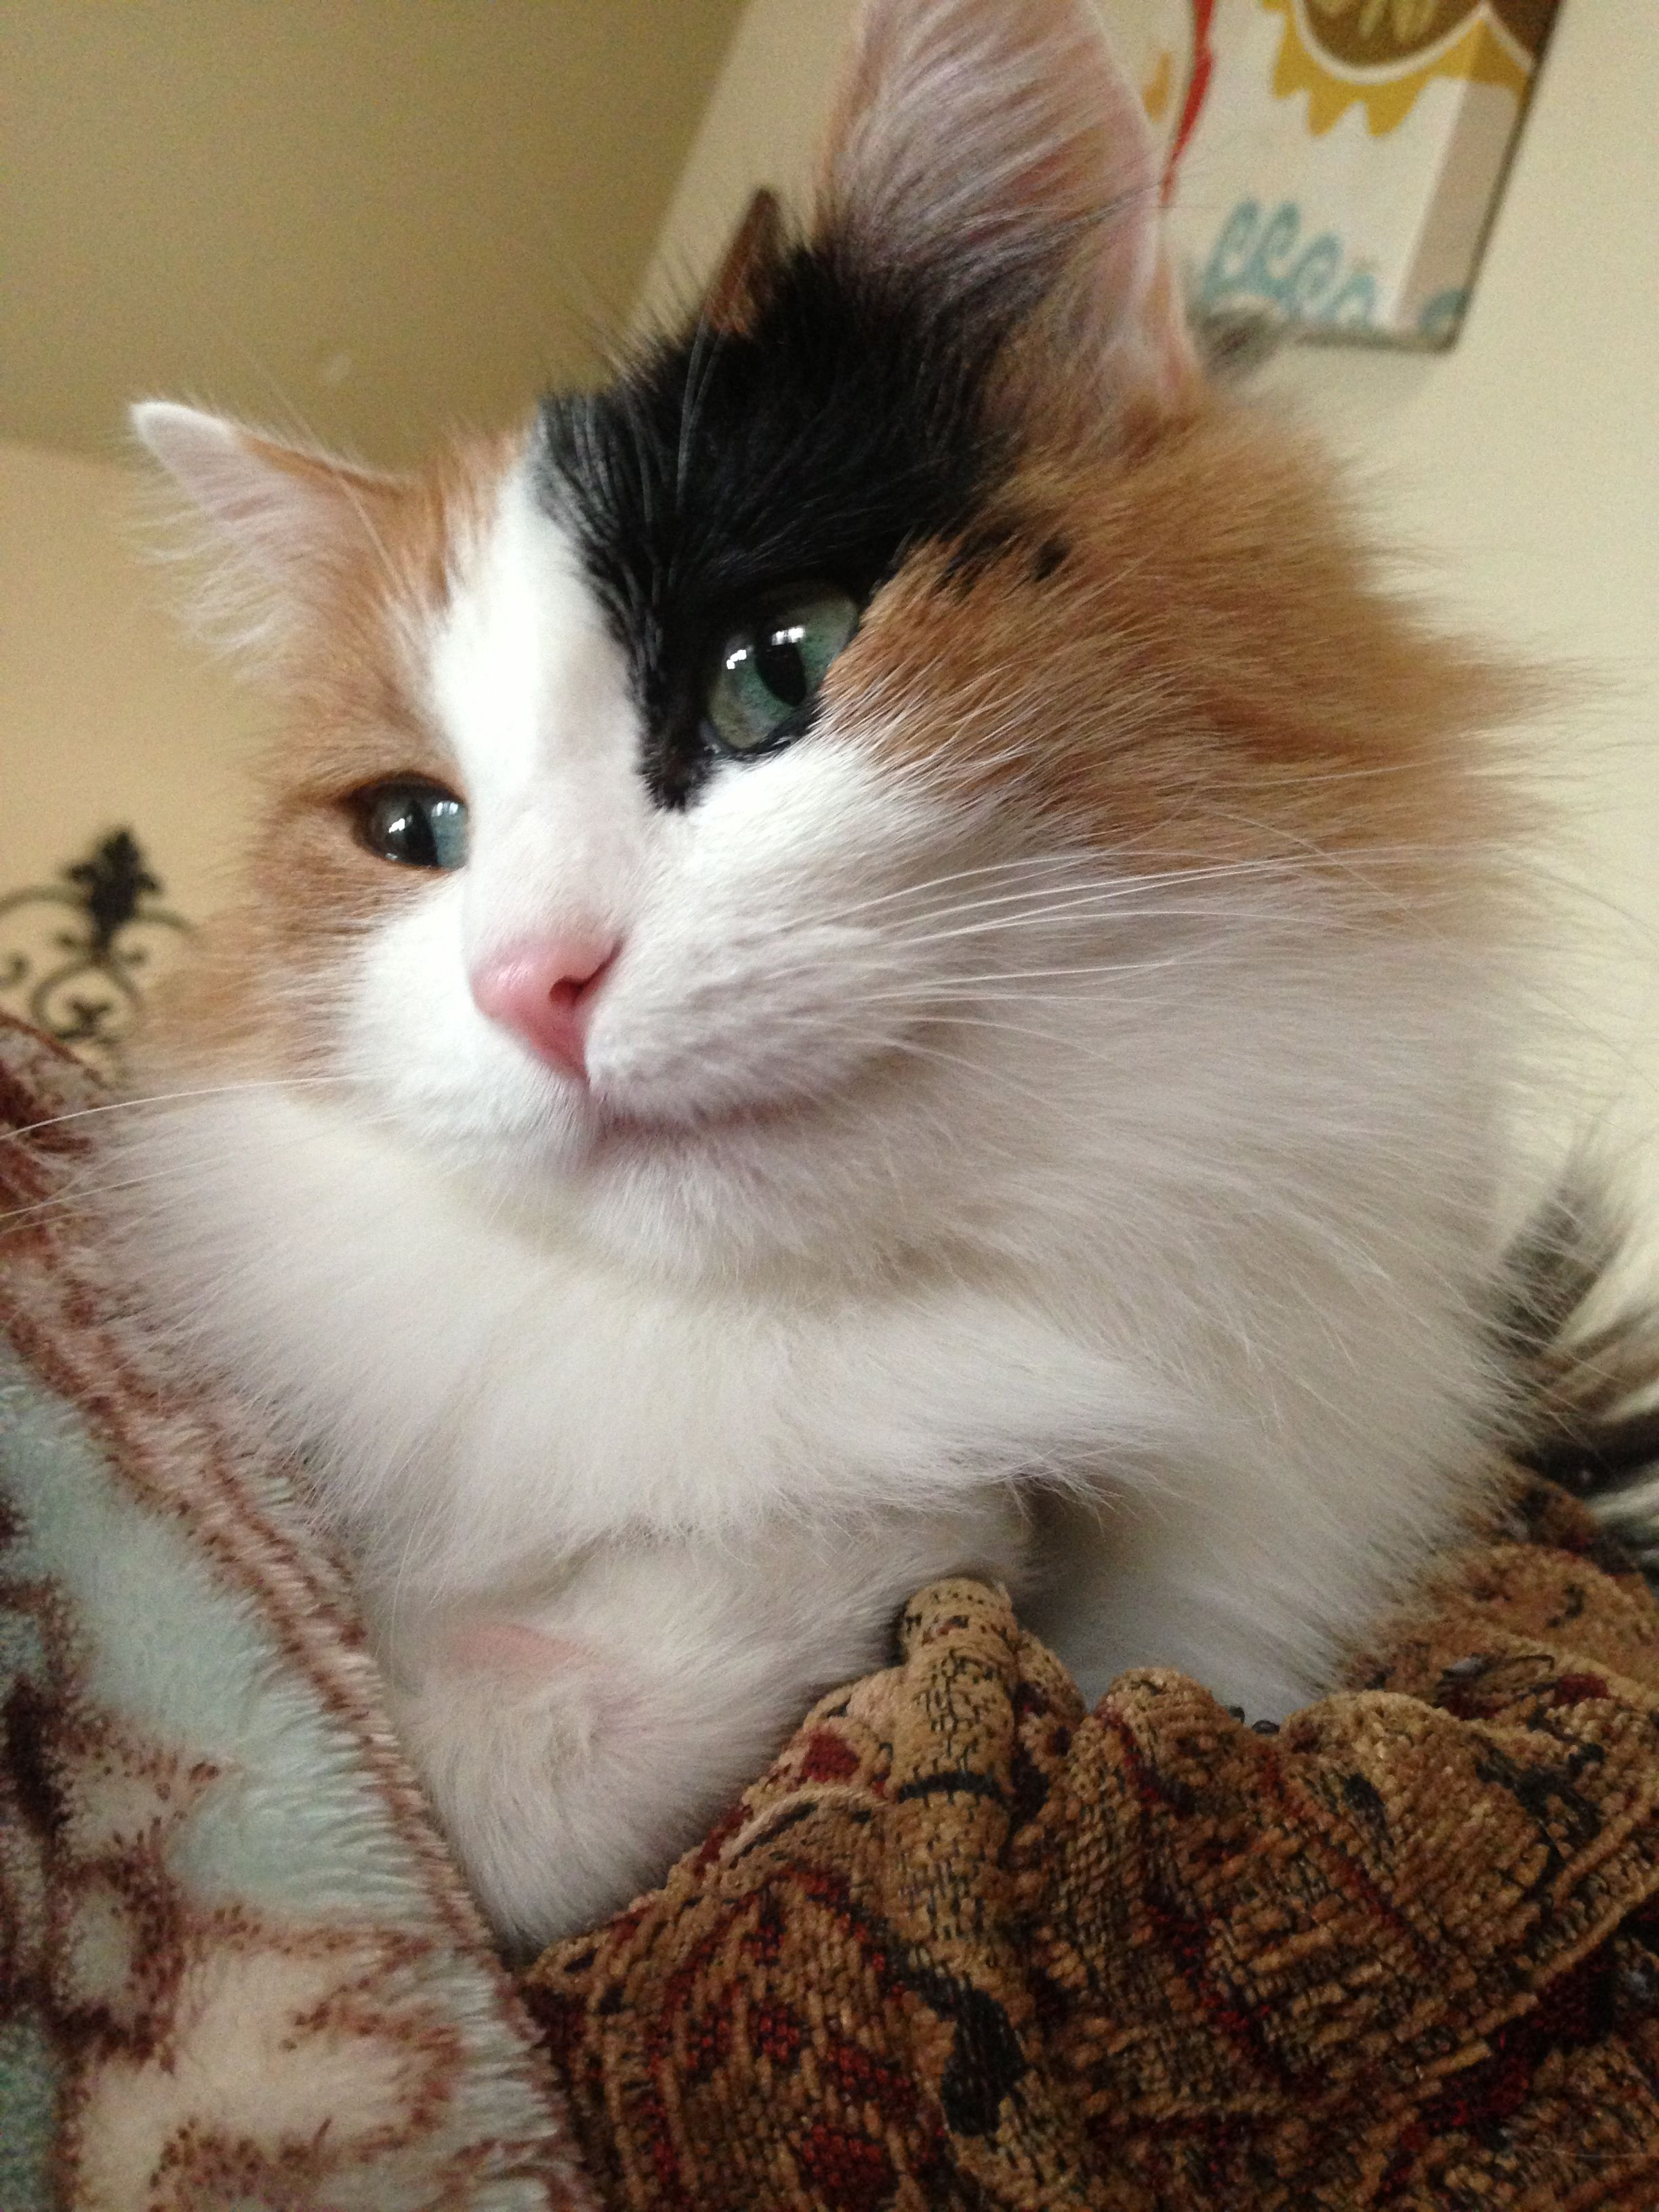 Cute calico cat Maui (With images) Calico cat, Cats